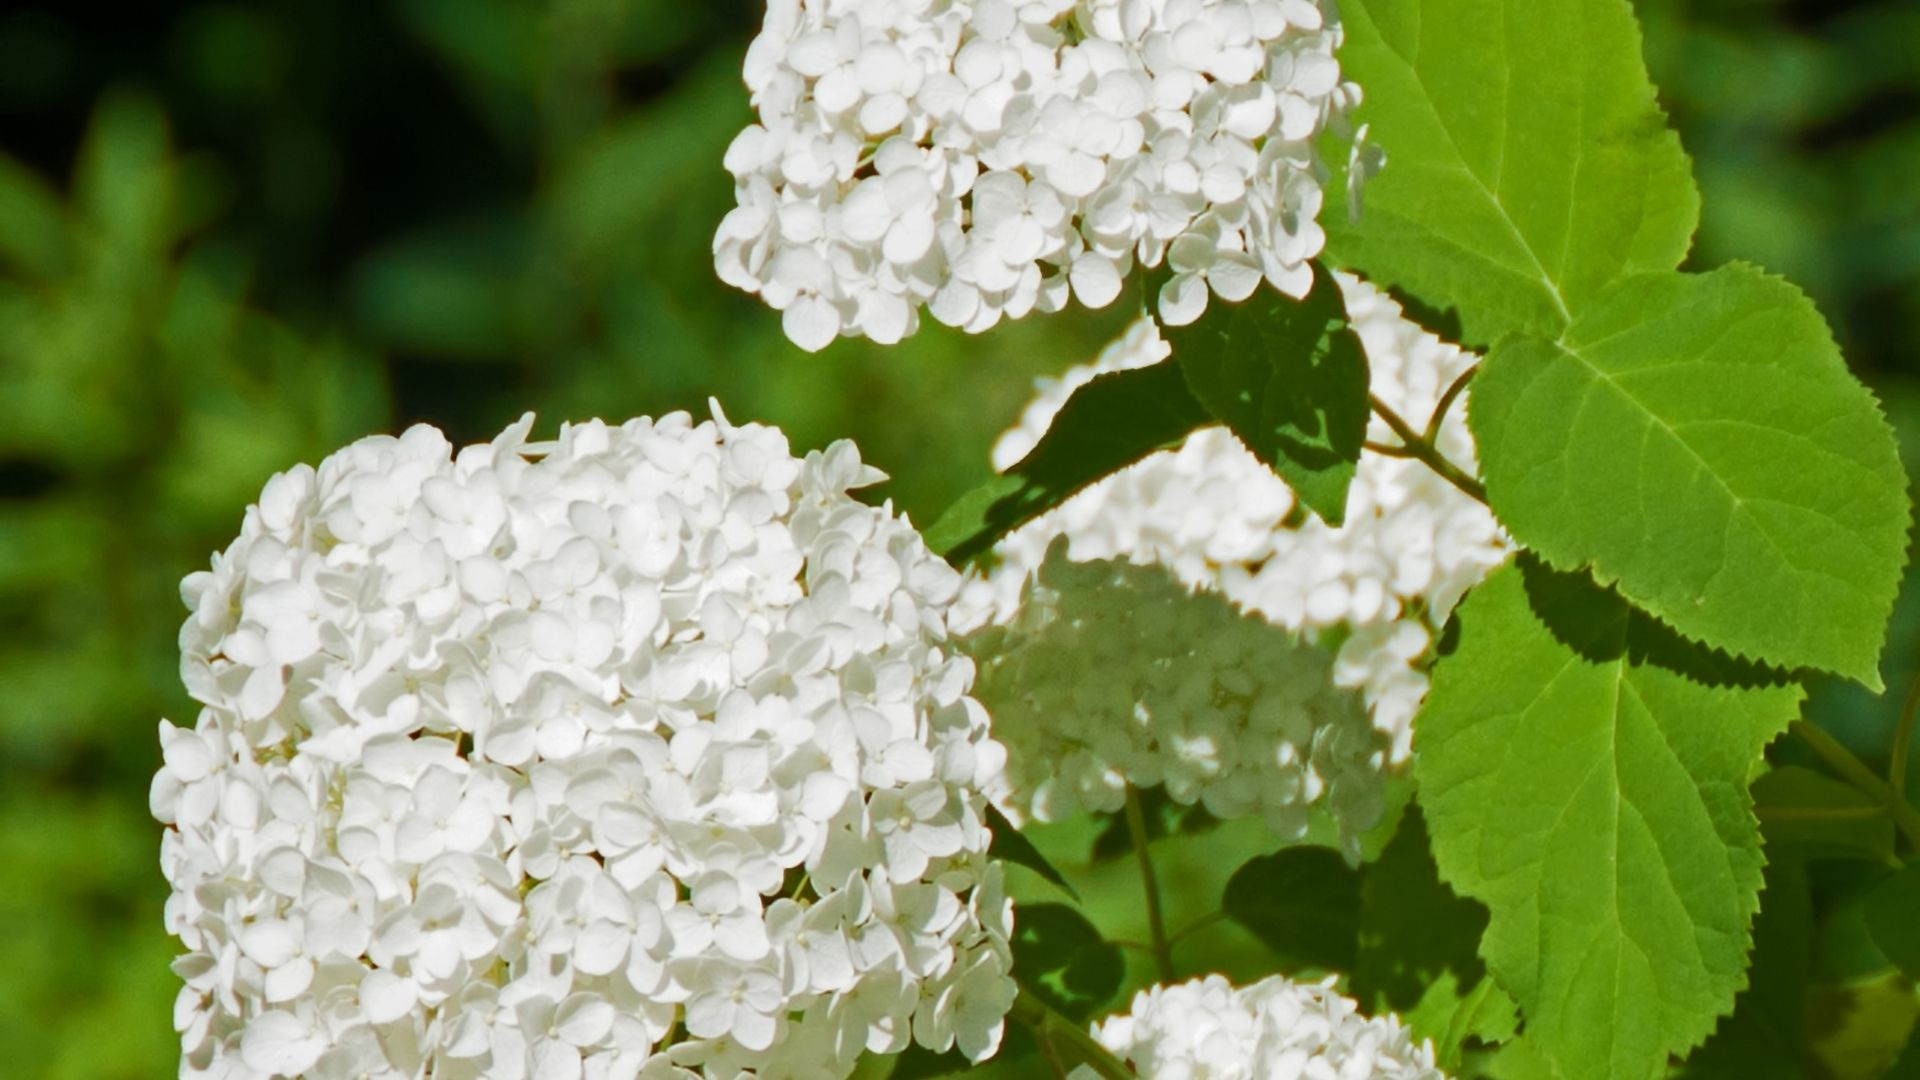 Annabelle Hydrangea - Four clusters of white flowers in between green foliage.